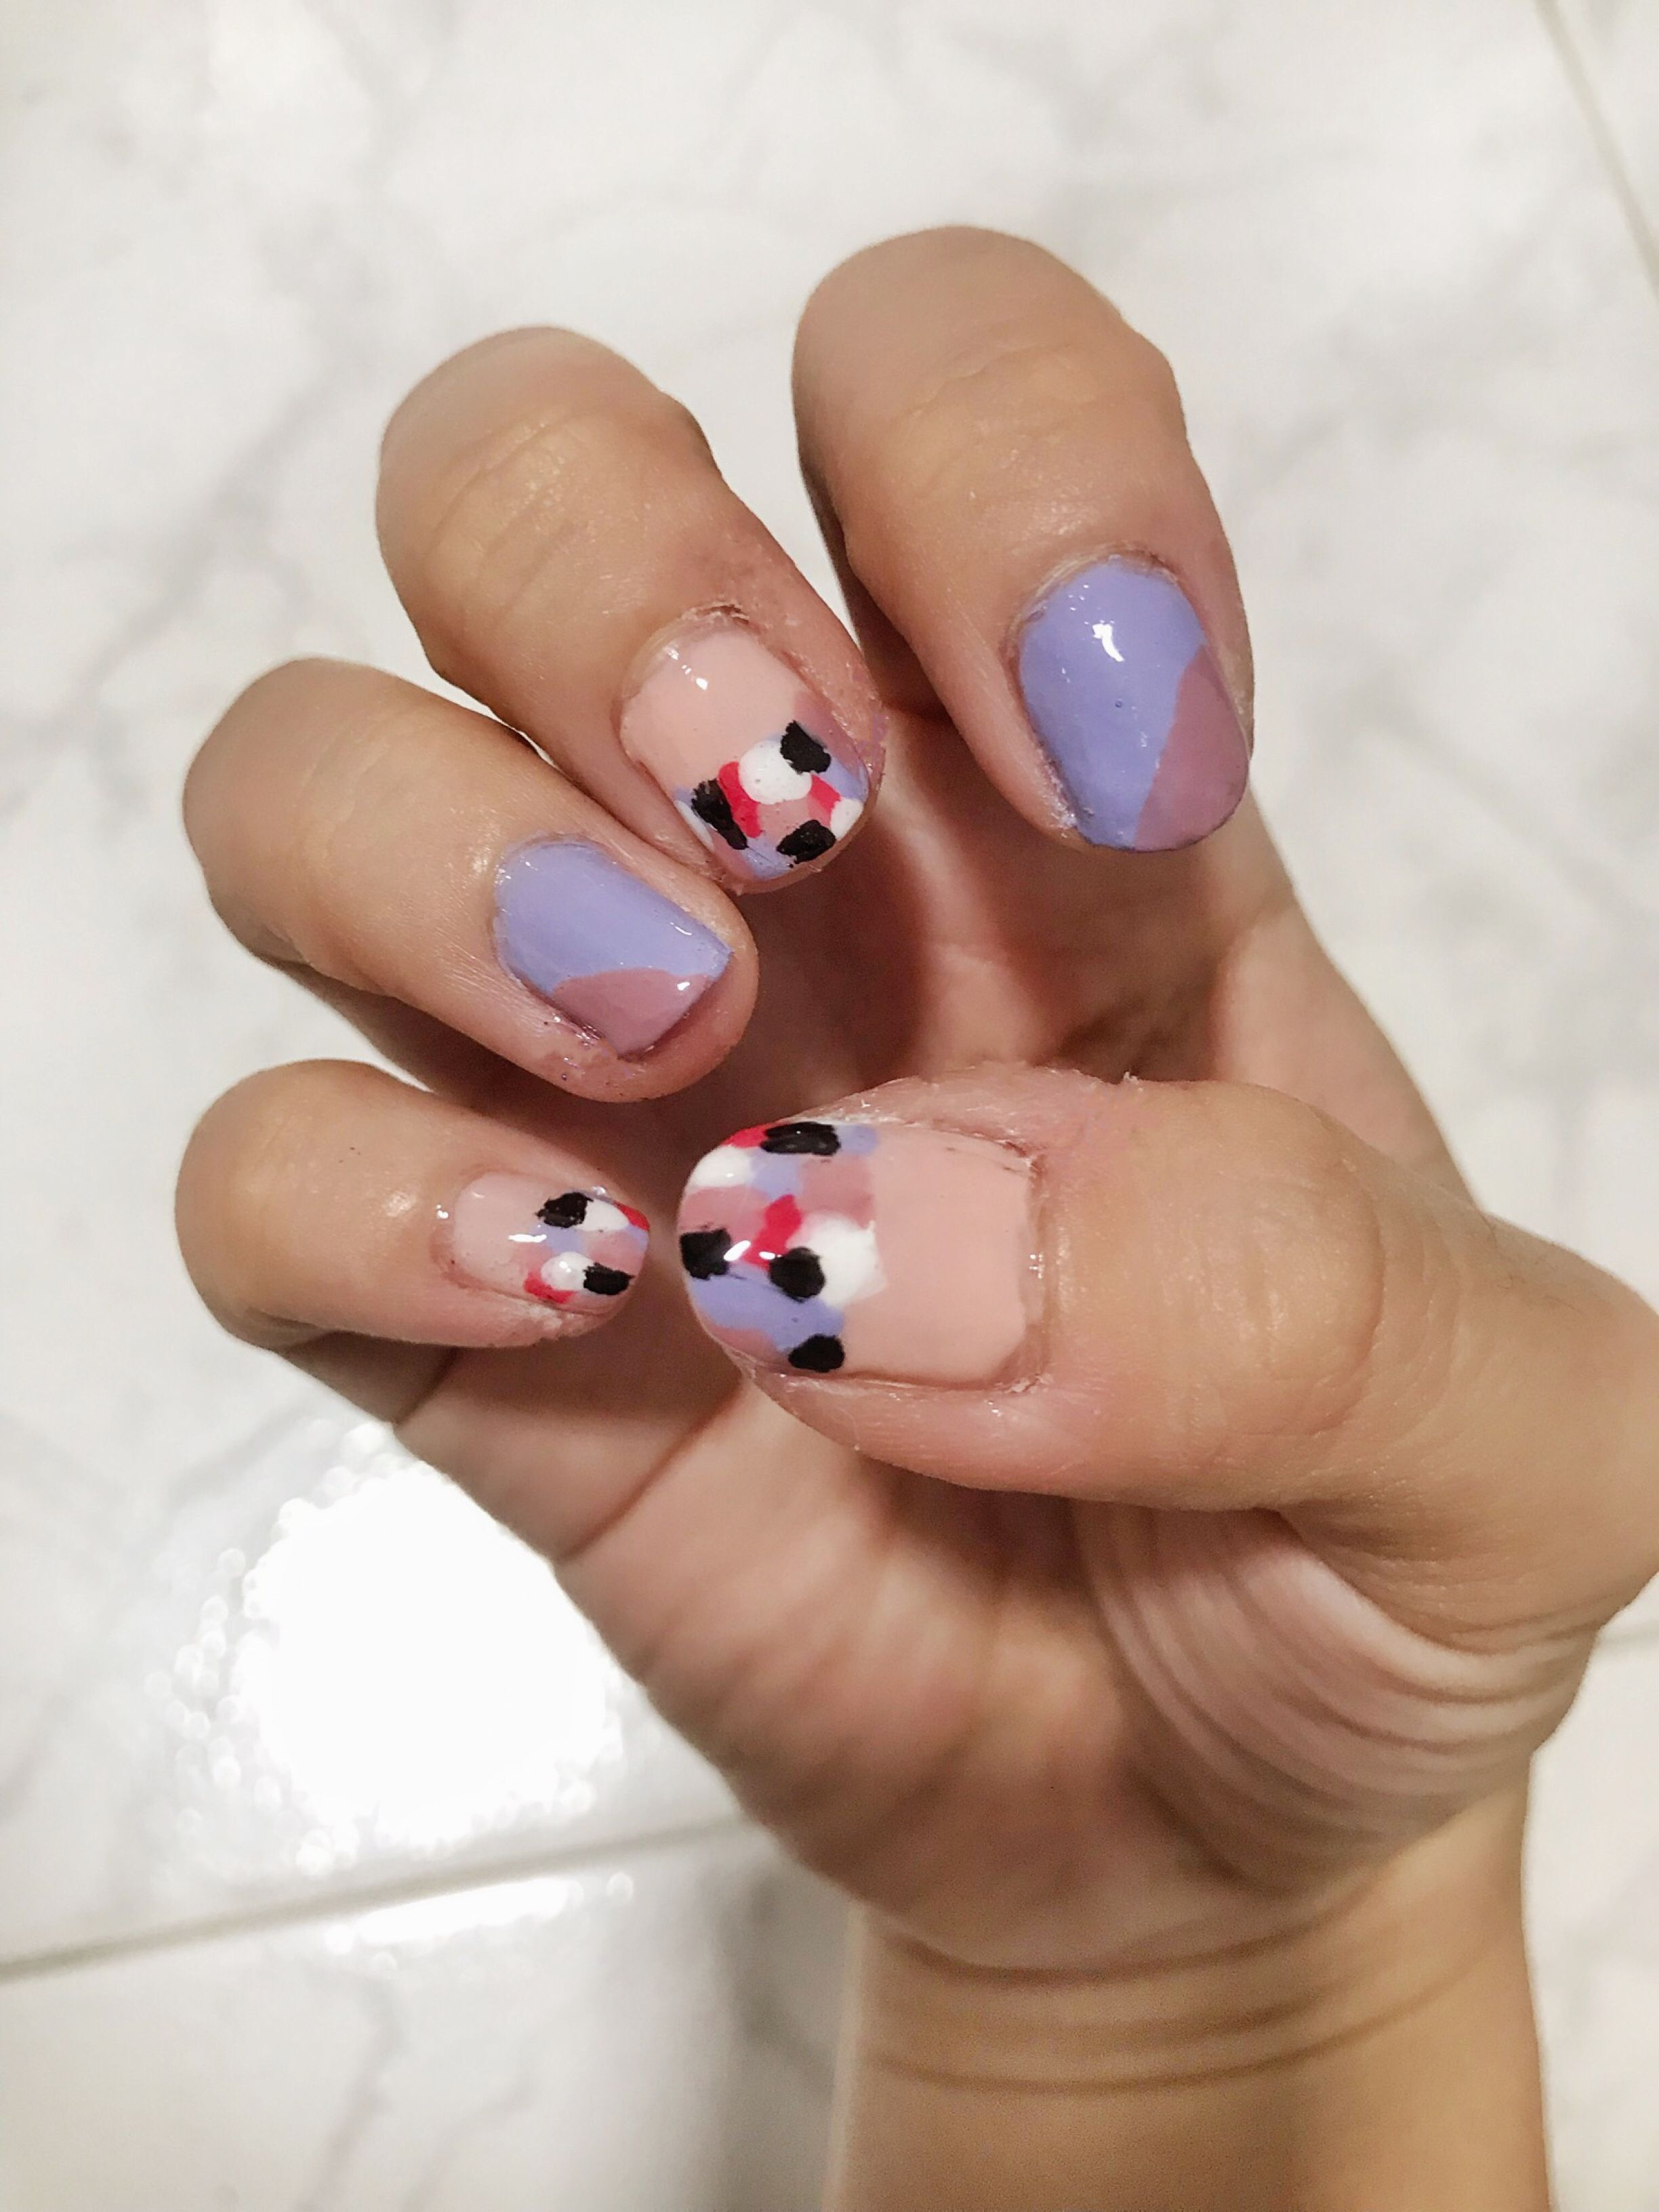 Pin by Christine Koh on Nails on a Chalkboard in 2019